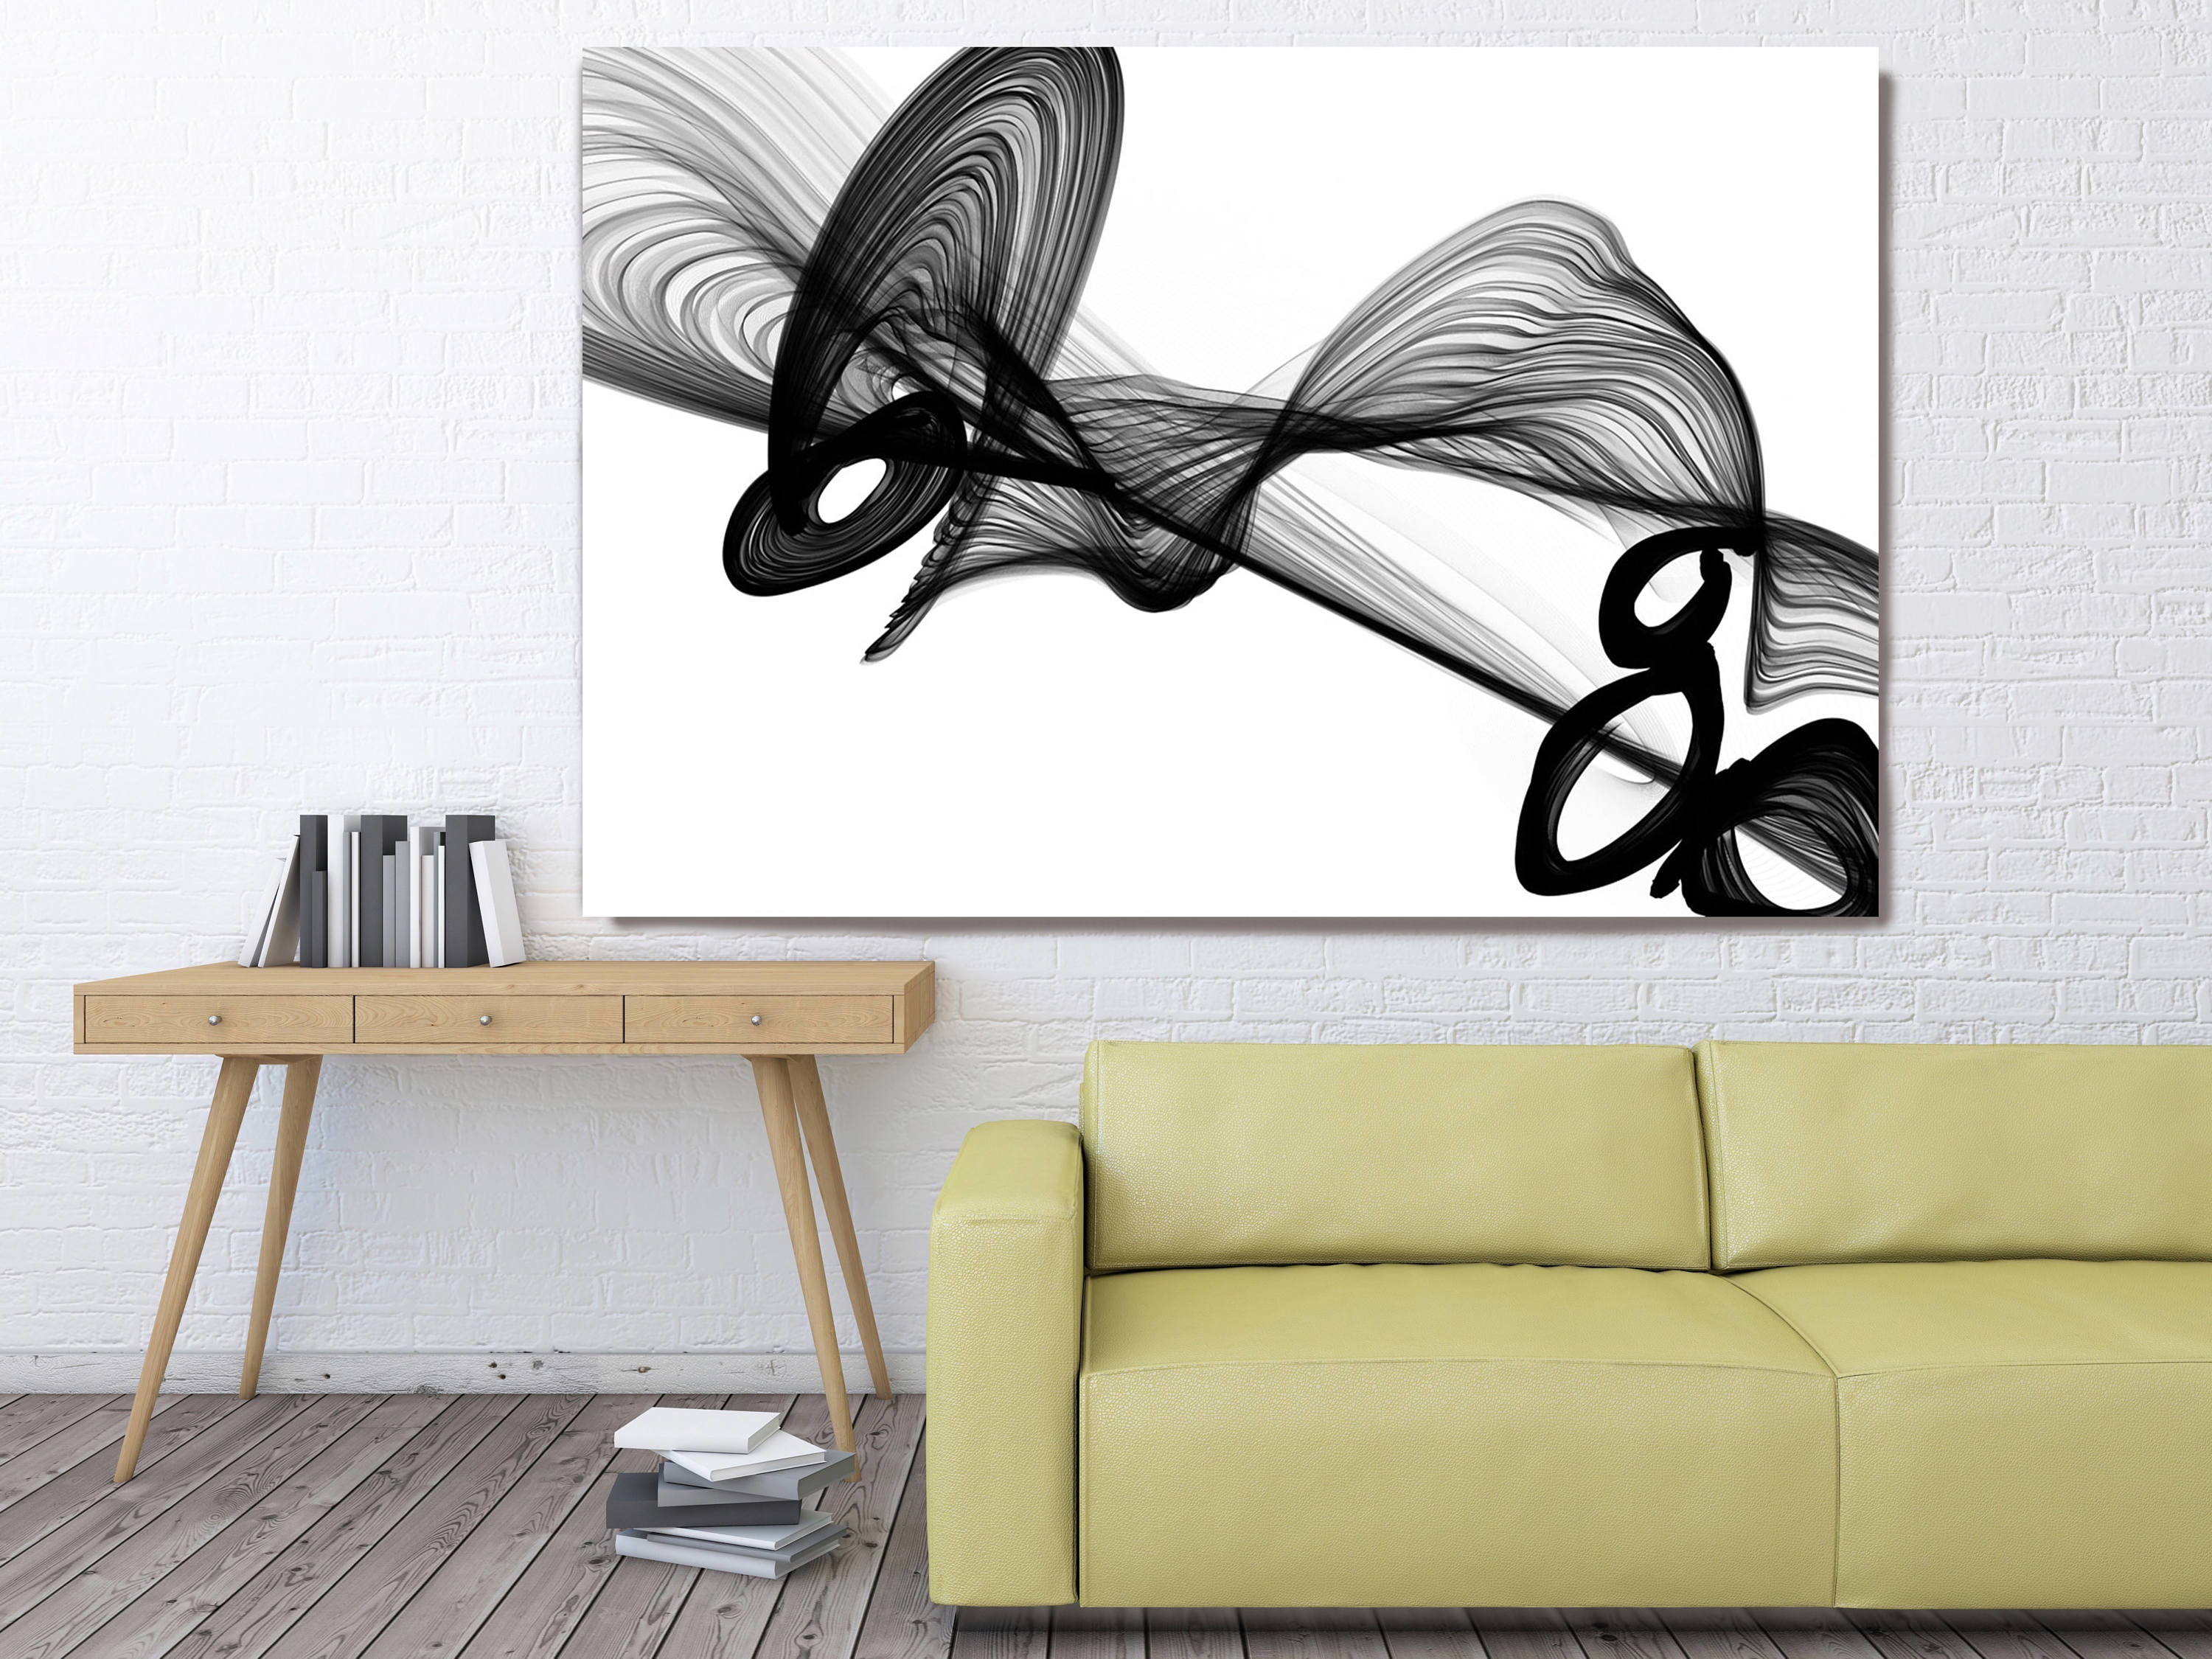 Irena Orlove Ideas Abstract Painting Print Wrapped Canvas Irena Orlov Full